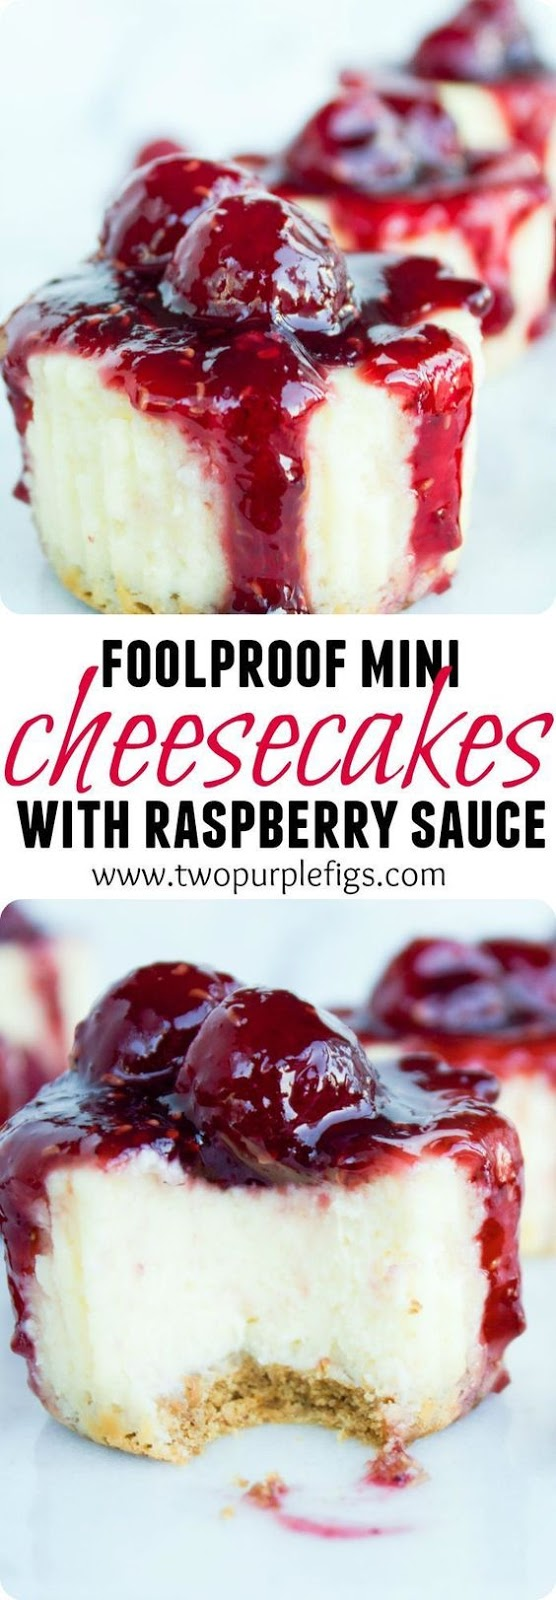 Mini Raspberry Cheesecakes